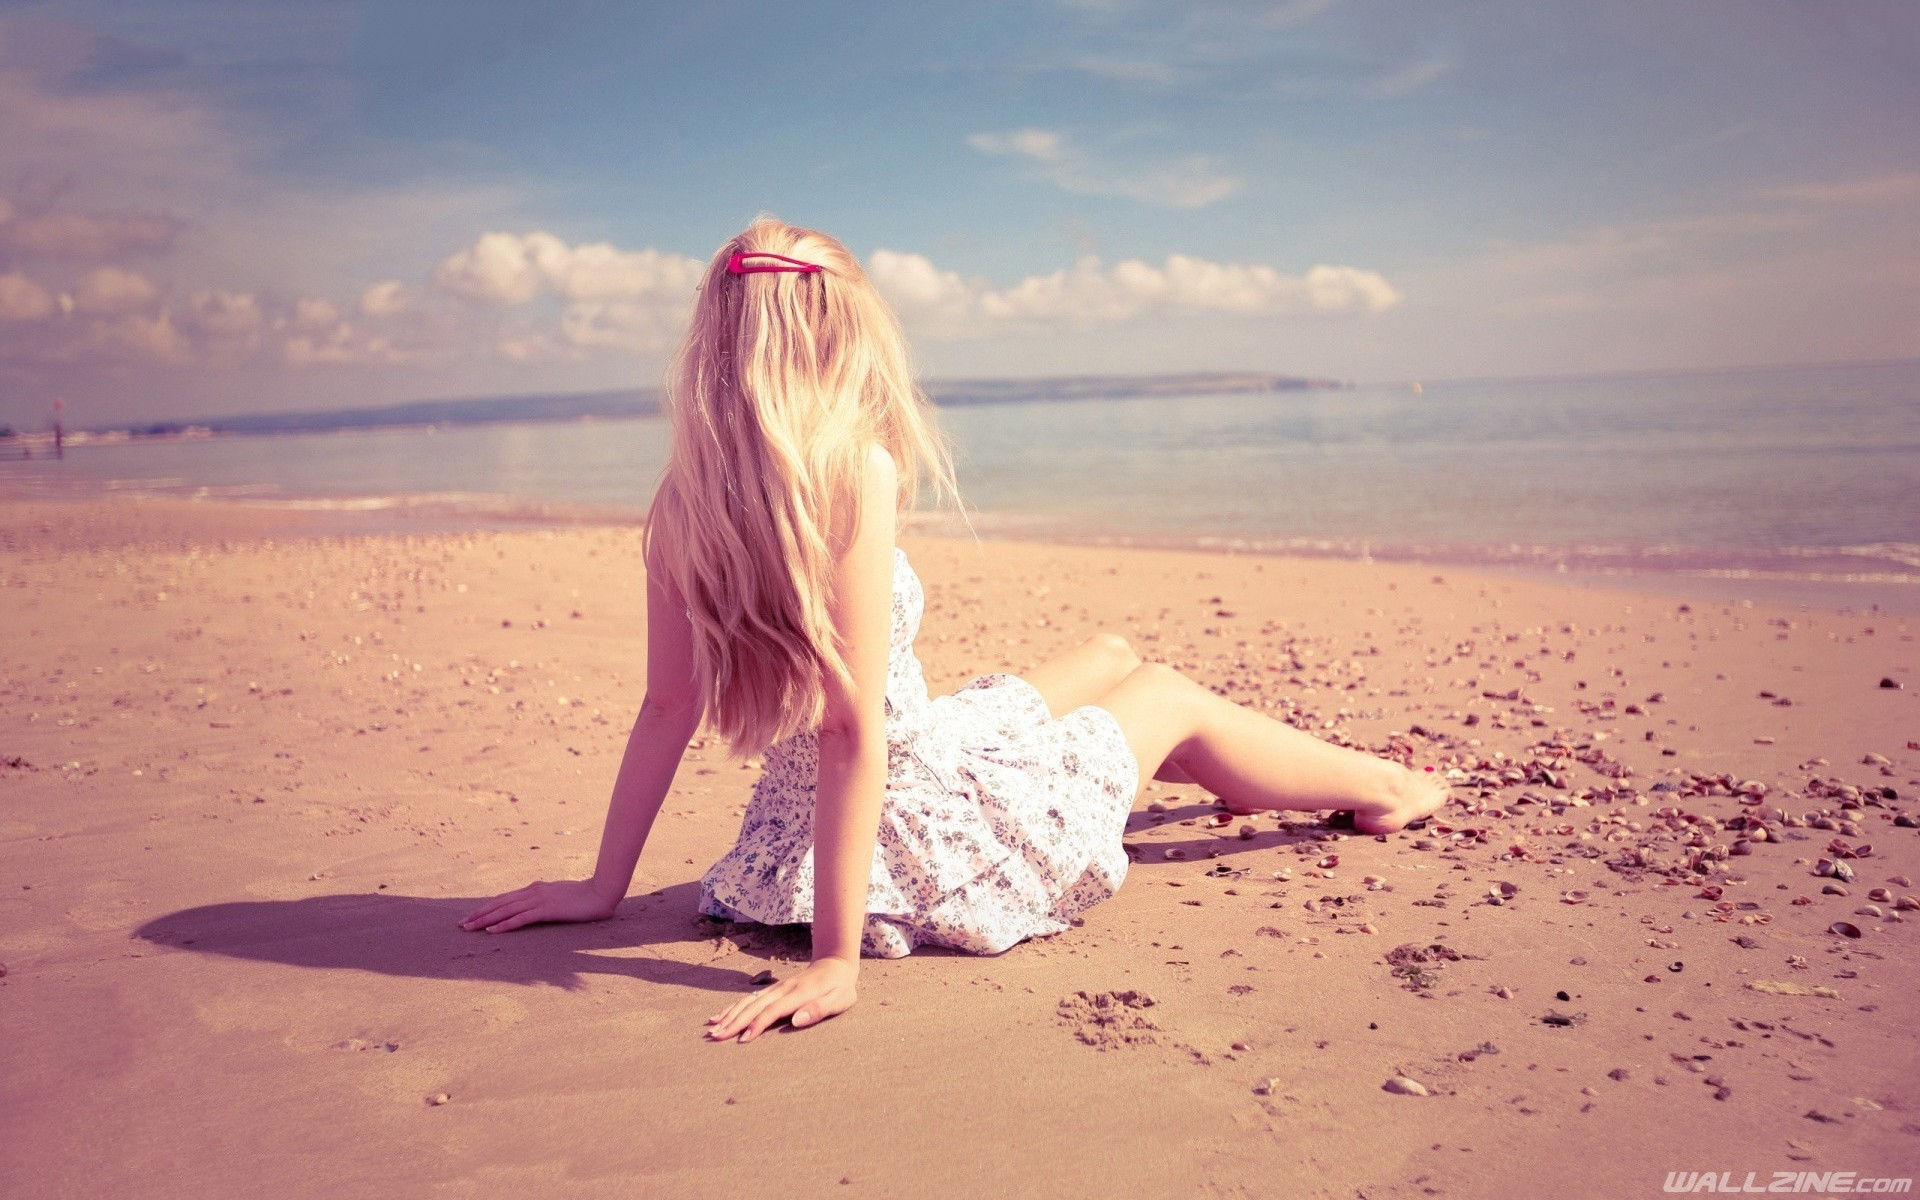 Lonely Girl Sitting On Beach Wallpaper